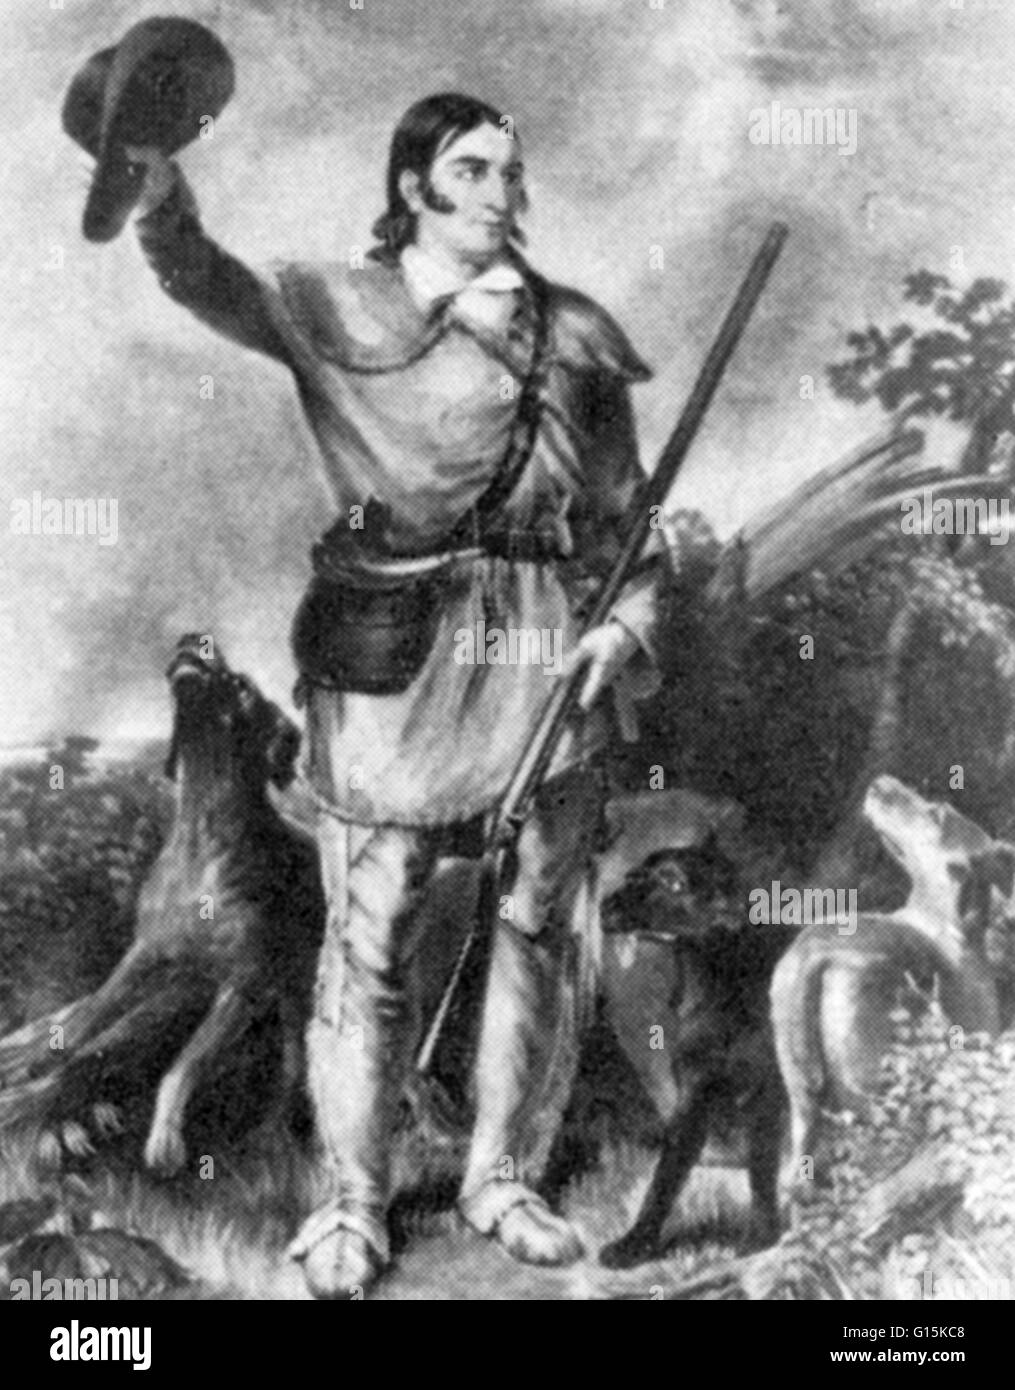 Davy Crockett (1786 -1836), American folk hero, soldier and politician, known colloquially as 'King of the Wild - Stock Image